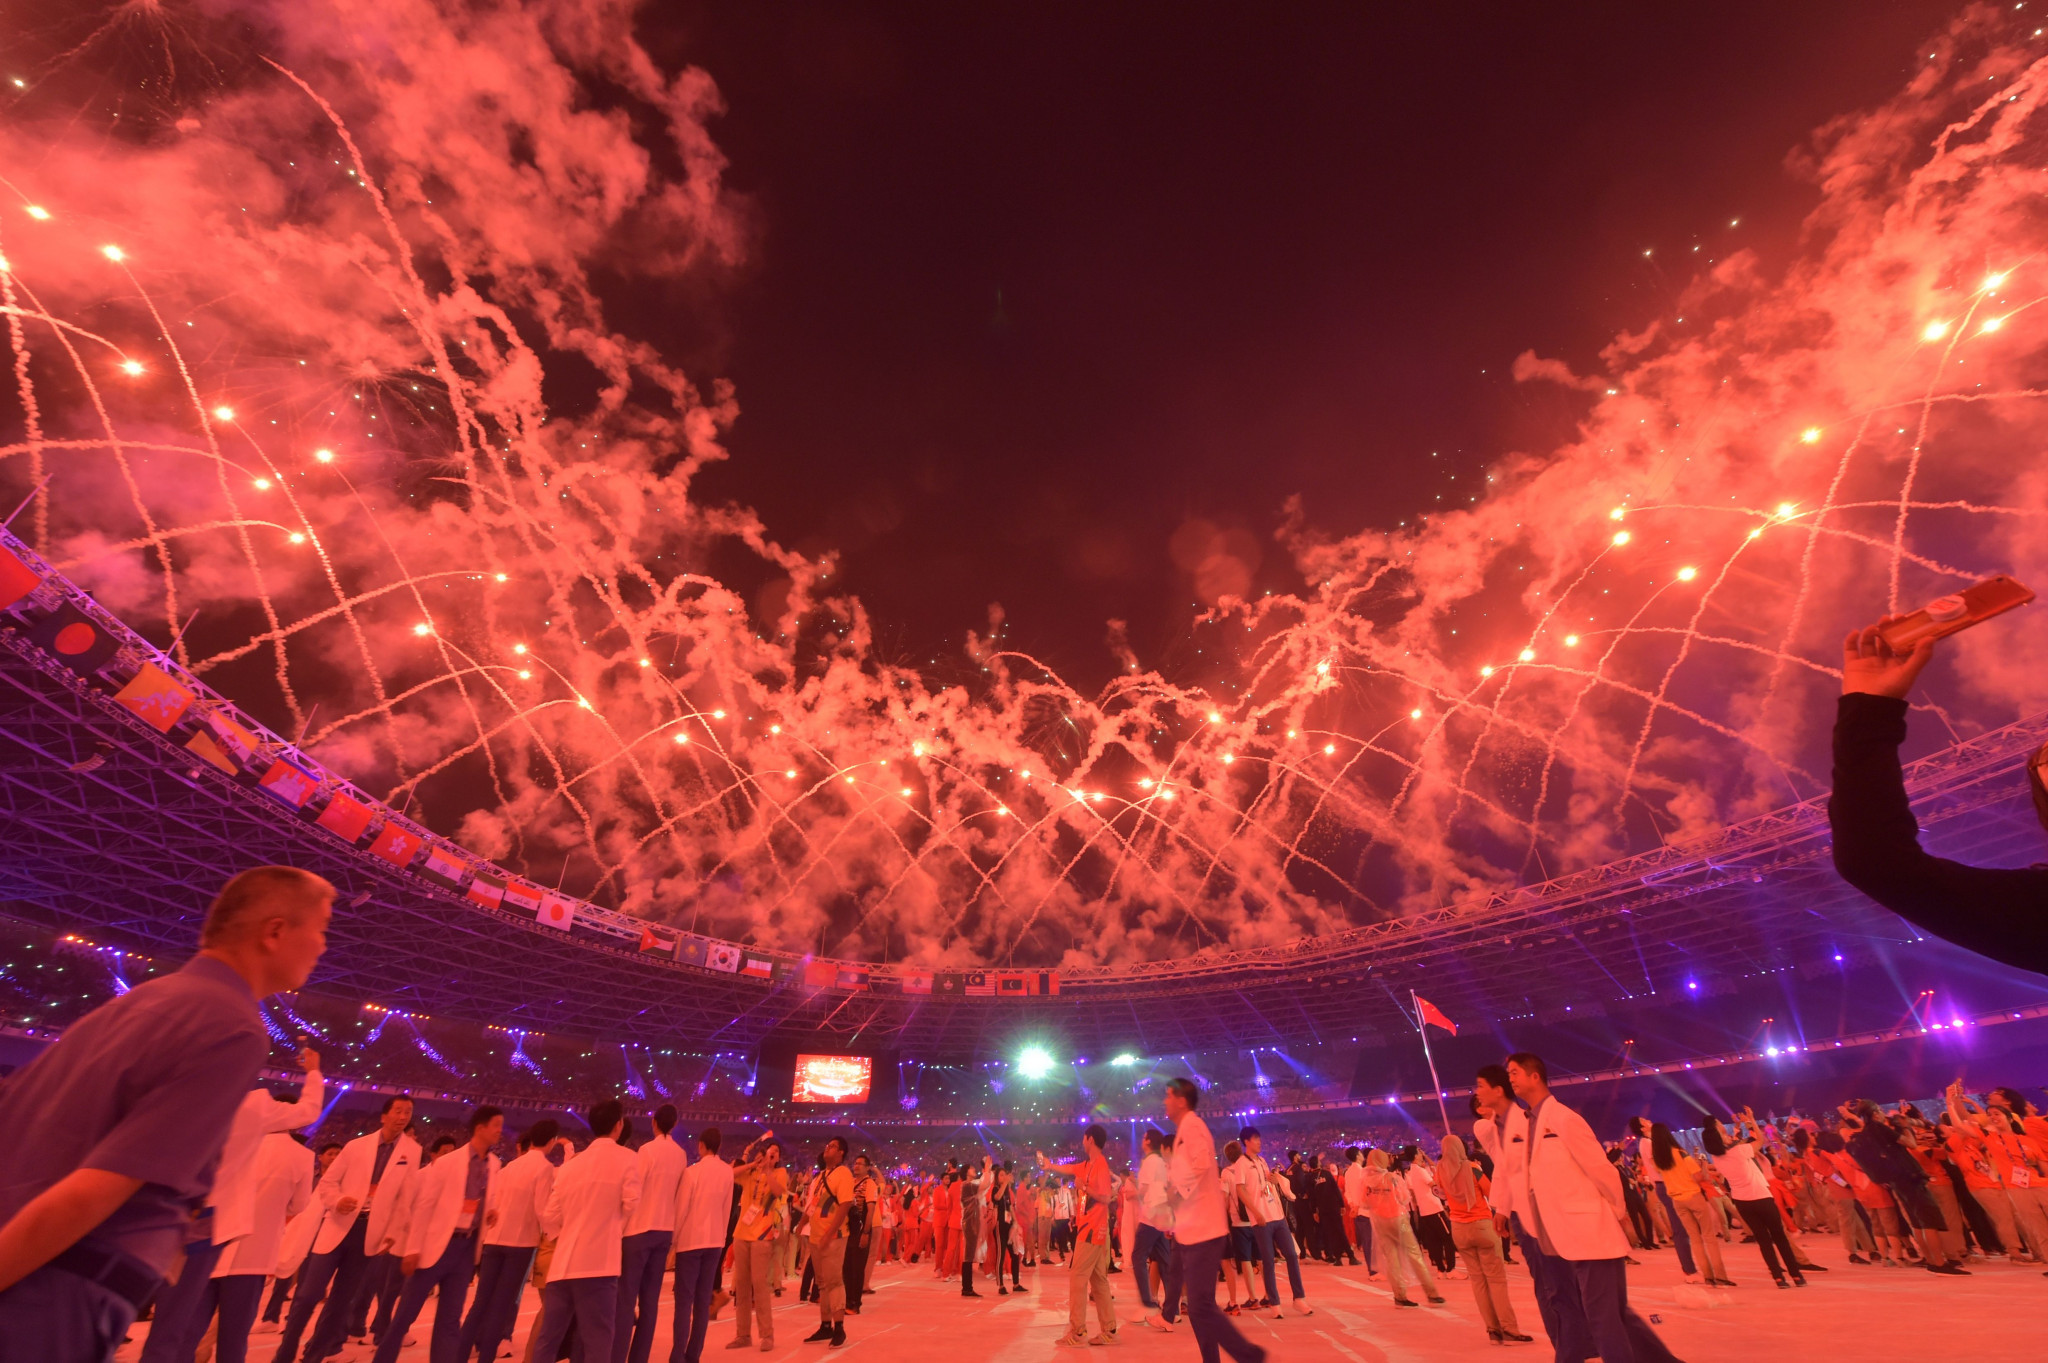 Indonesia, host of the 2018 Asian Games, is hoping to promote a 2032 Olympic bid ©Getty Images